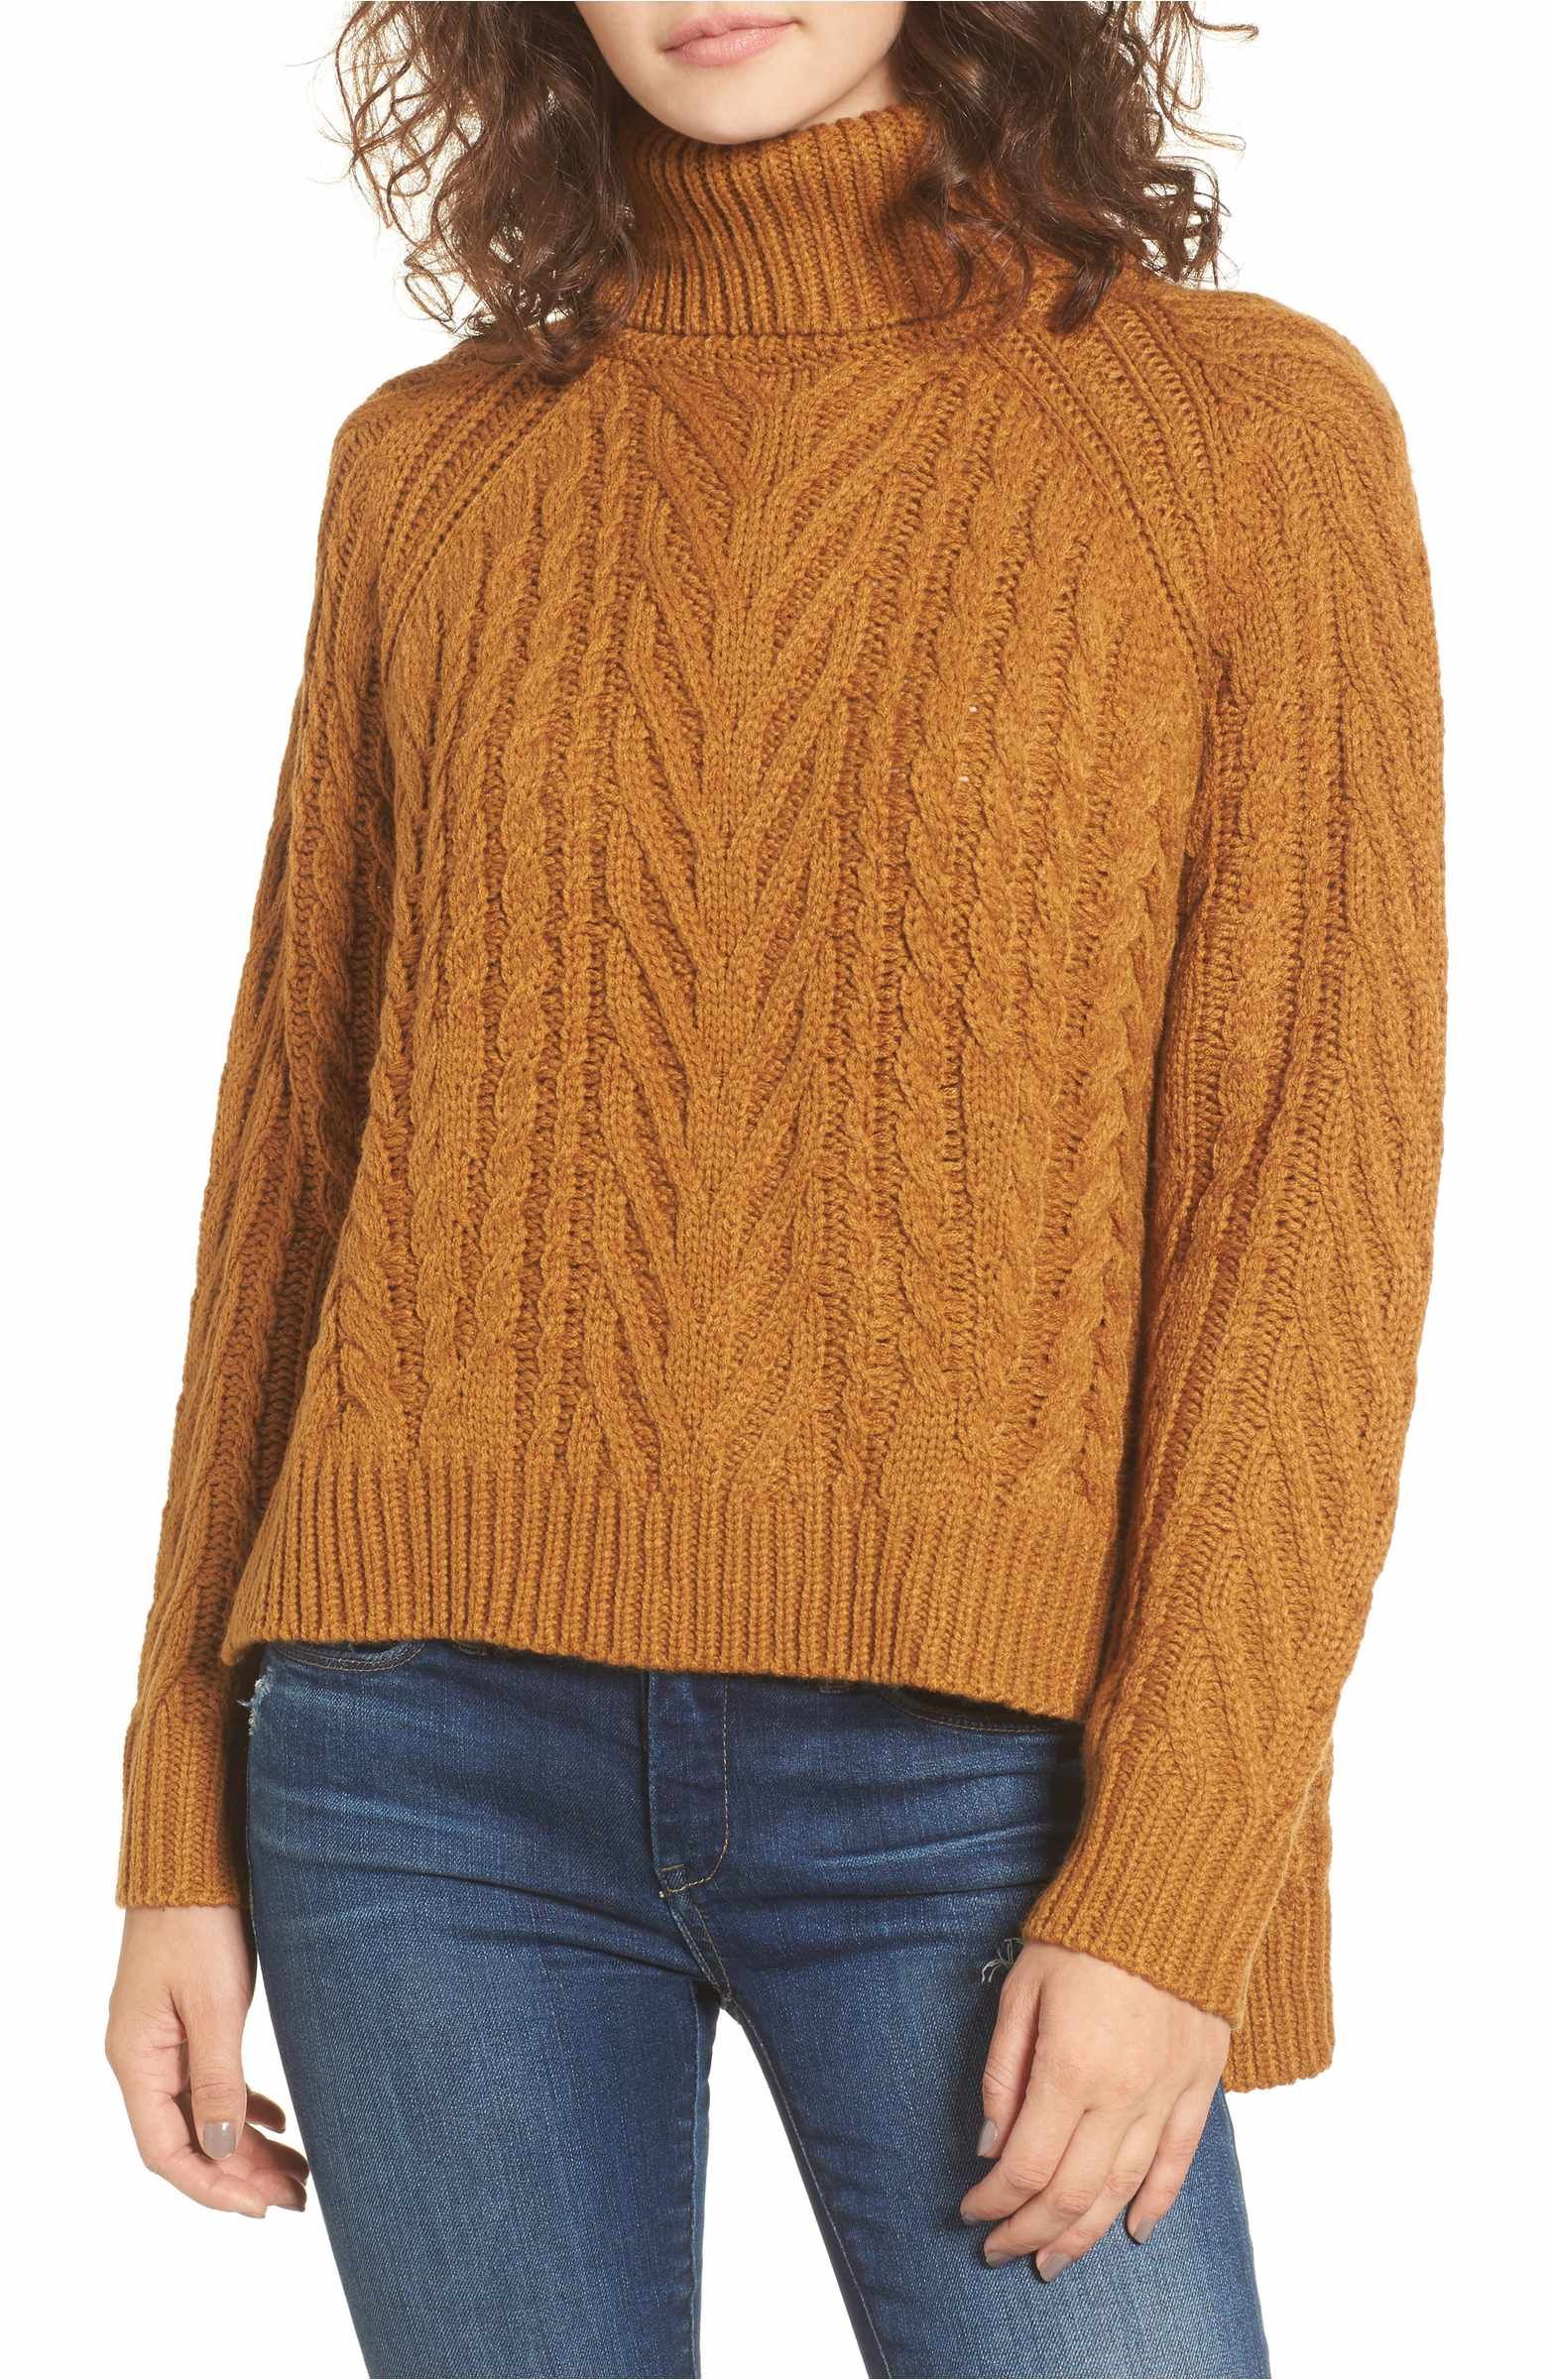 40ae72fd2f Main Image - Dreamers by Debut Cable Knit Turtleneck Sweater